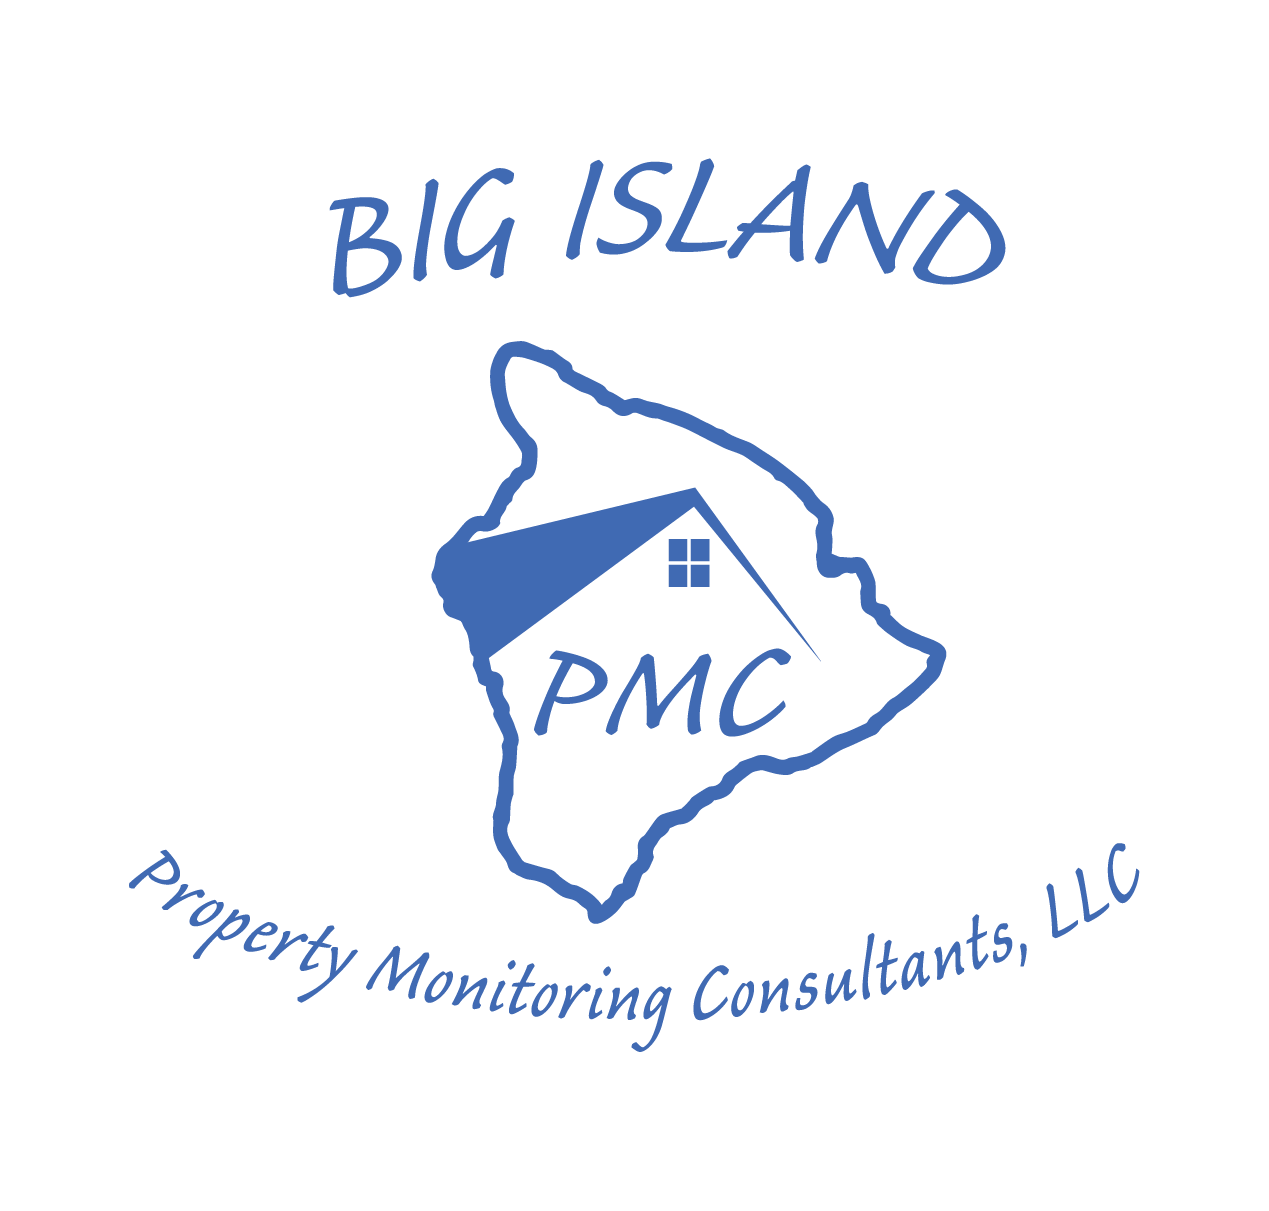 Big Island Property Monitoring Consultants